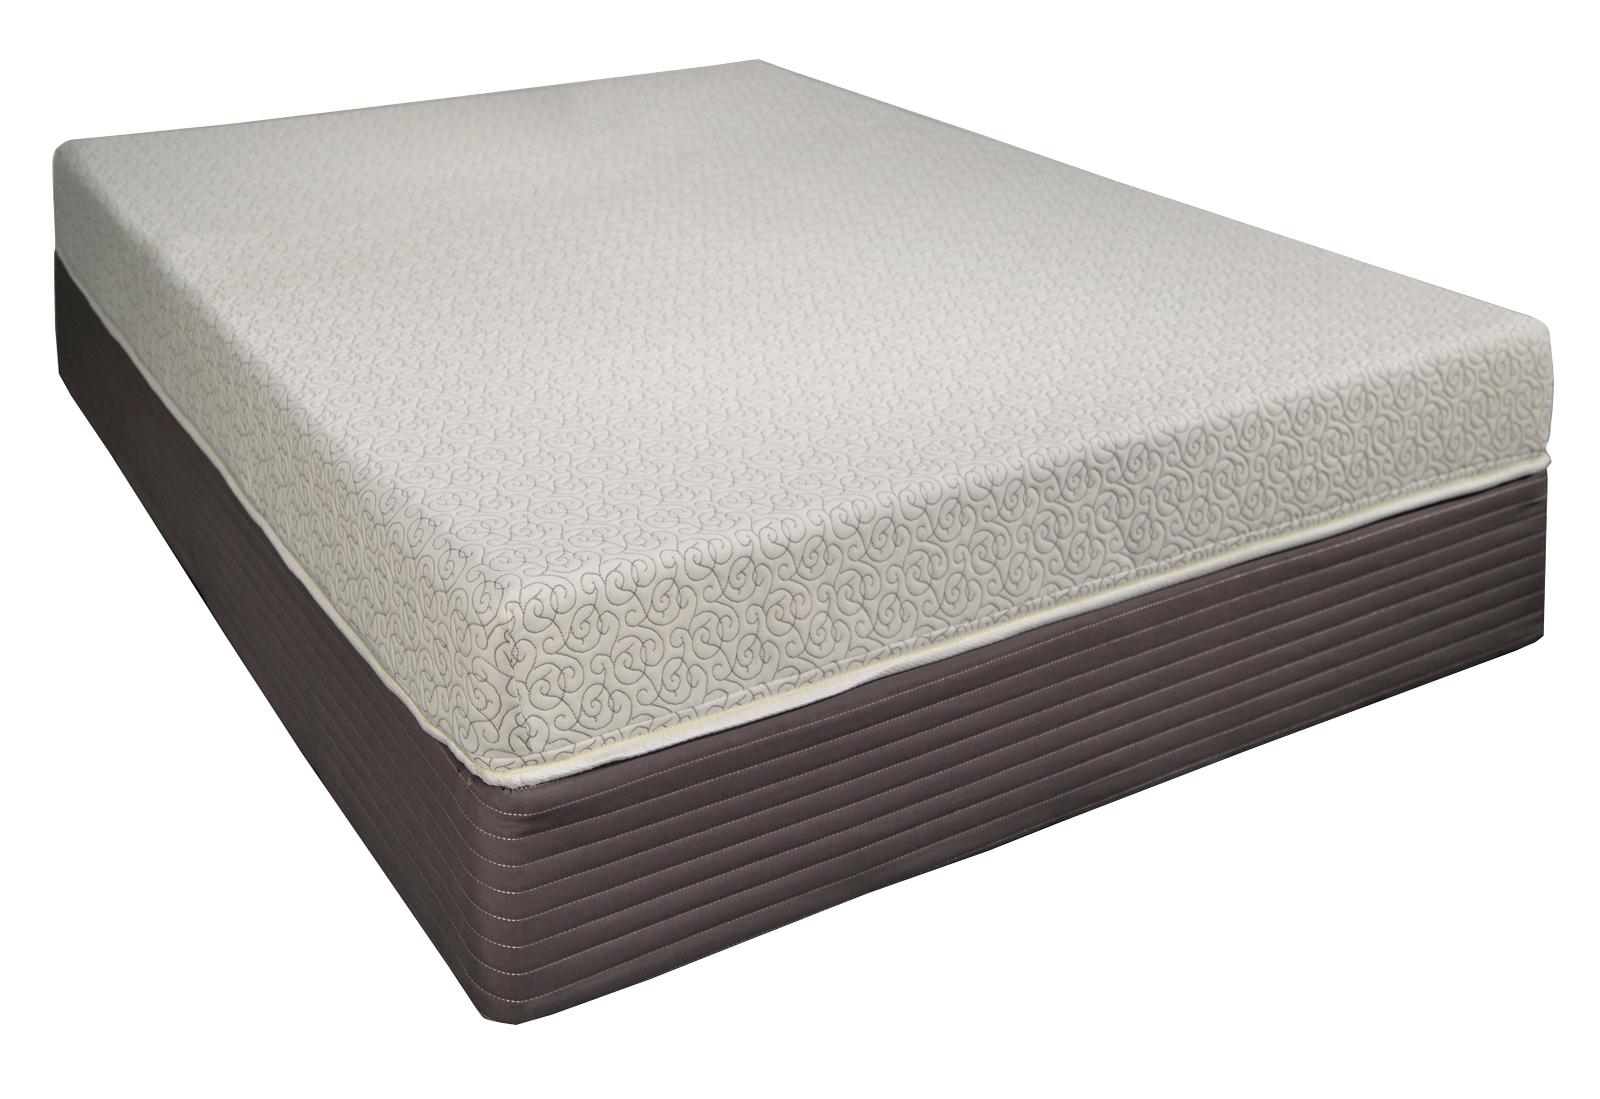 Who Sells Beautyrest Recharge Hybrid Boco Raton Ultimate Plush Mattress - Full The Cheapest